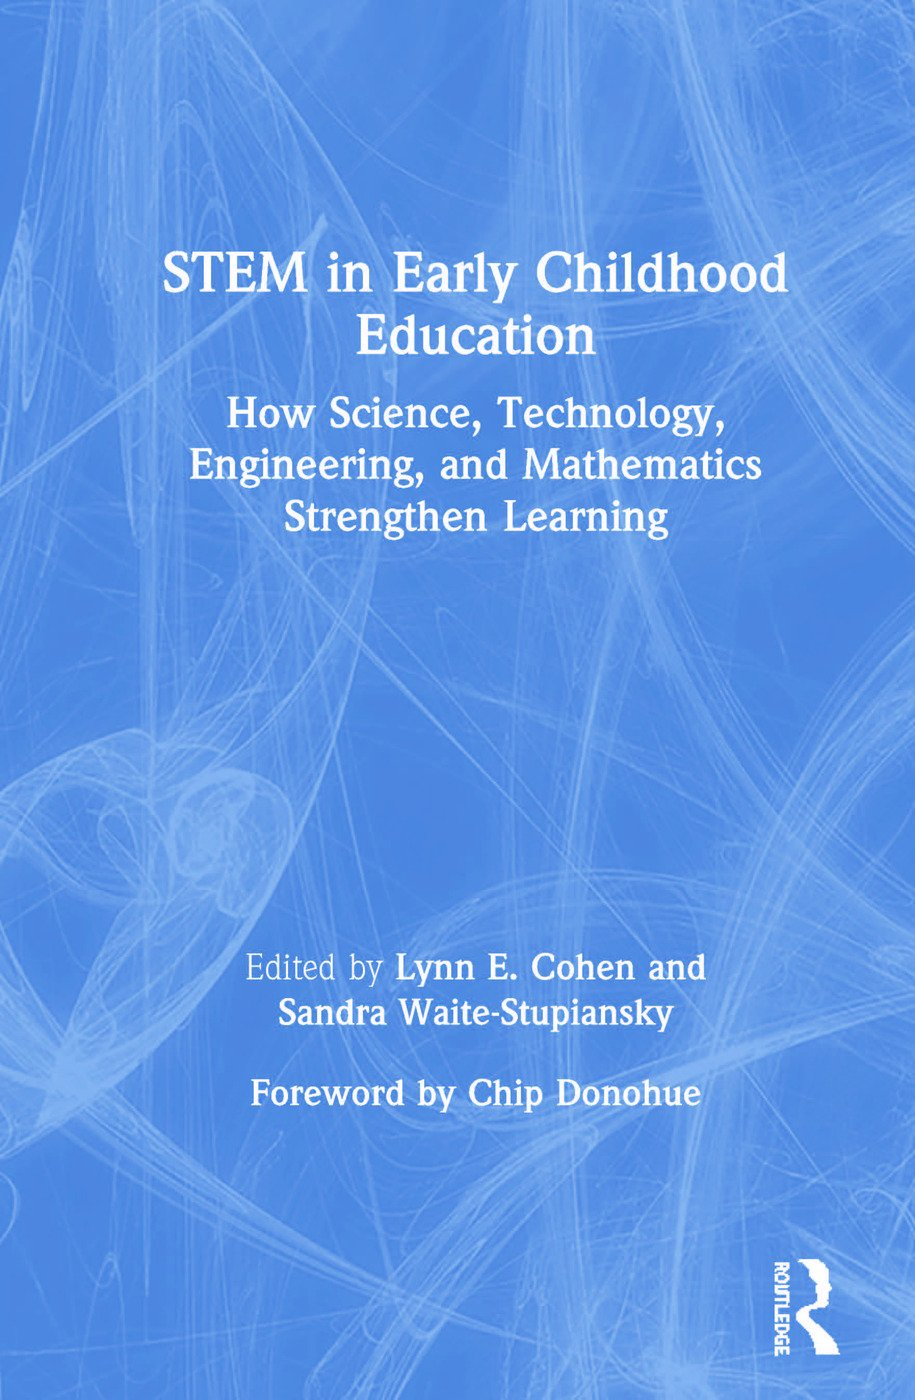 STEM in Early Childhood Education: How Science, Technology, Engineering, and Mathematics Strengthen Learning book cover